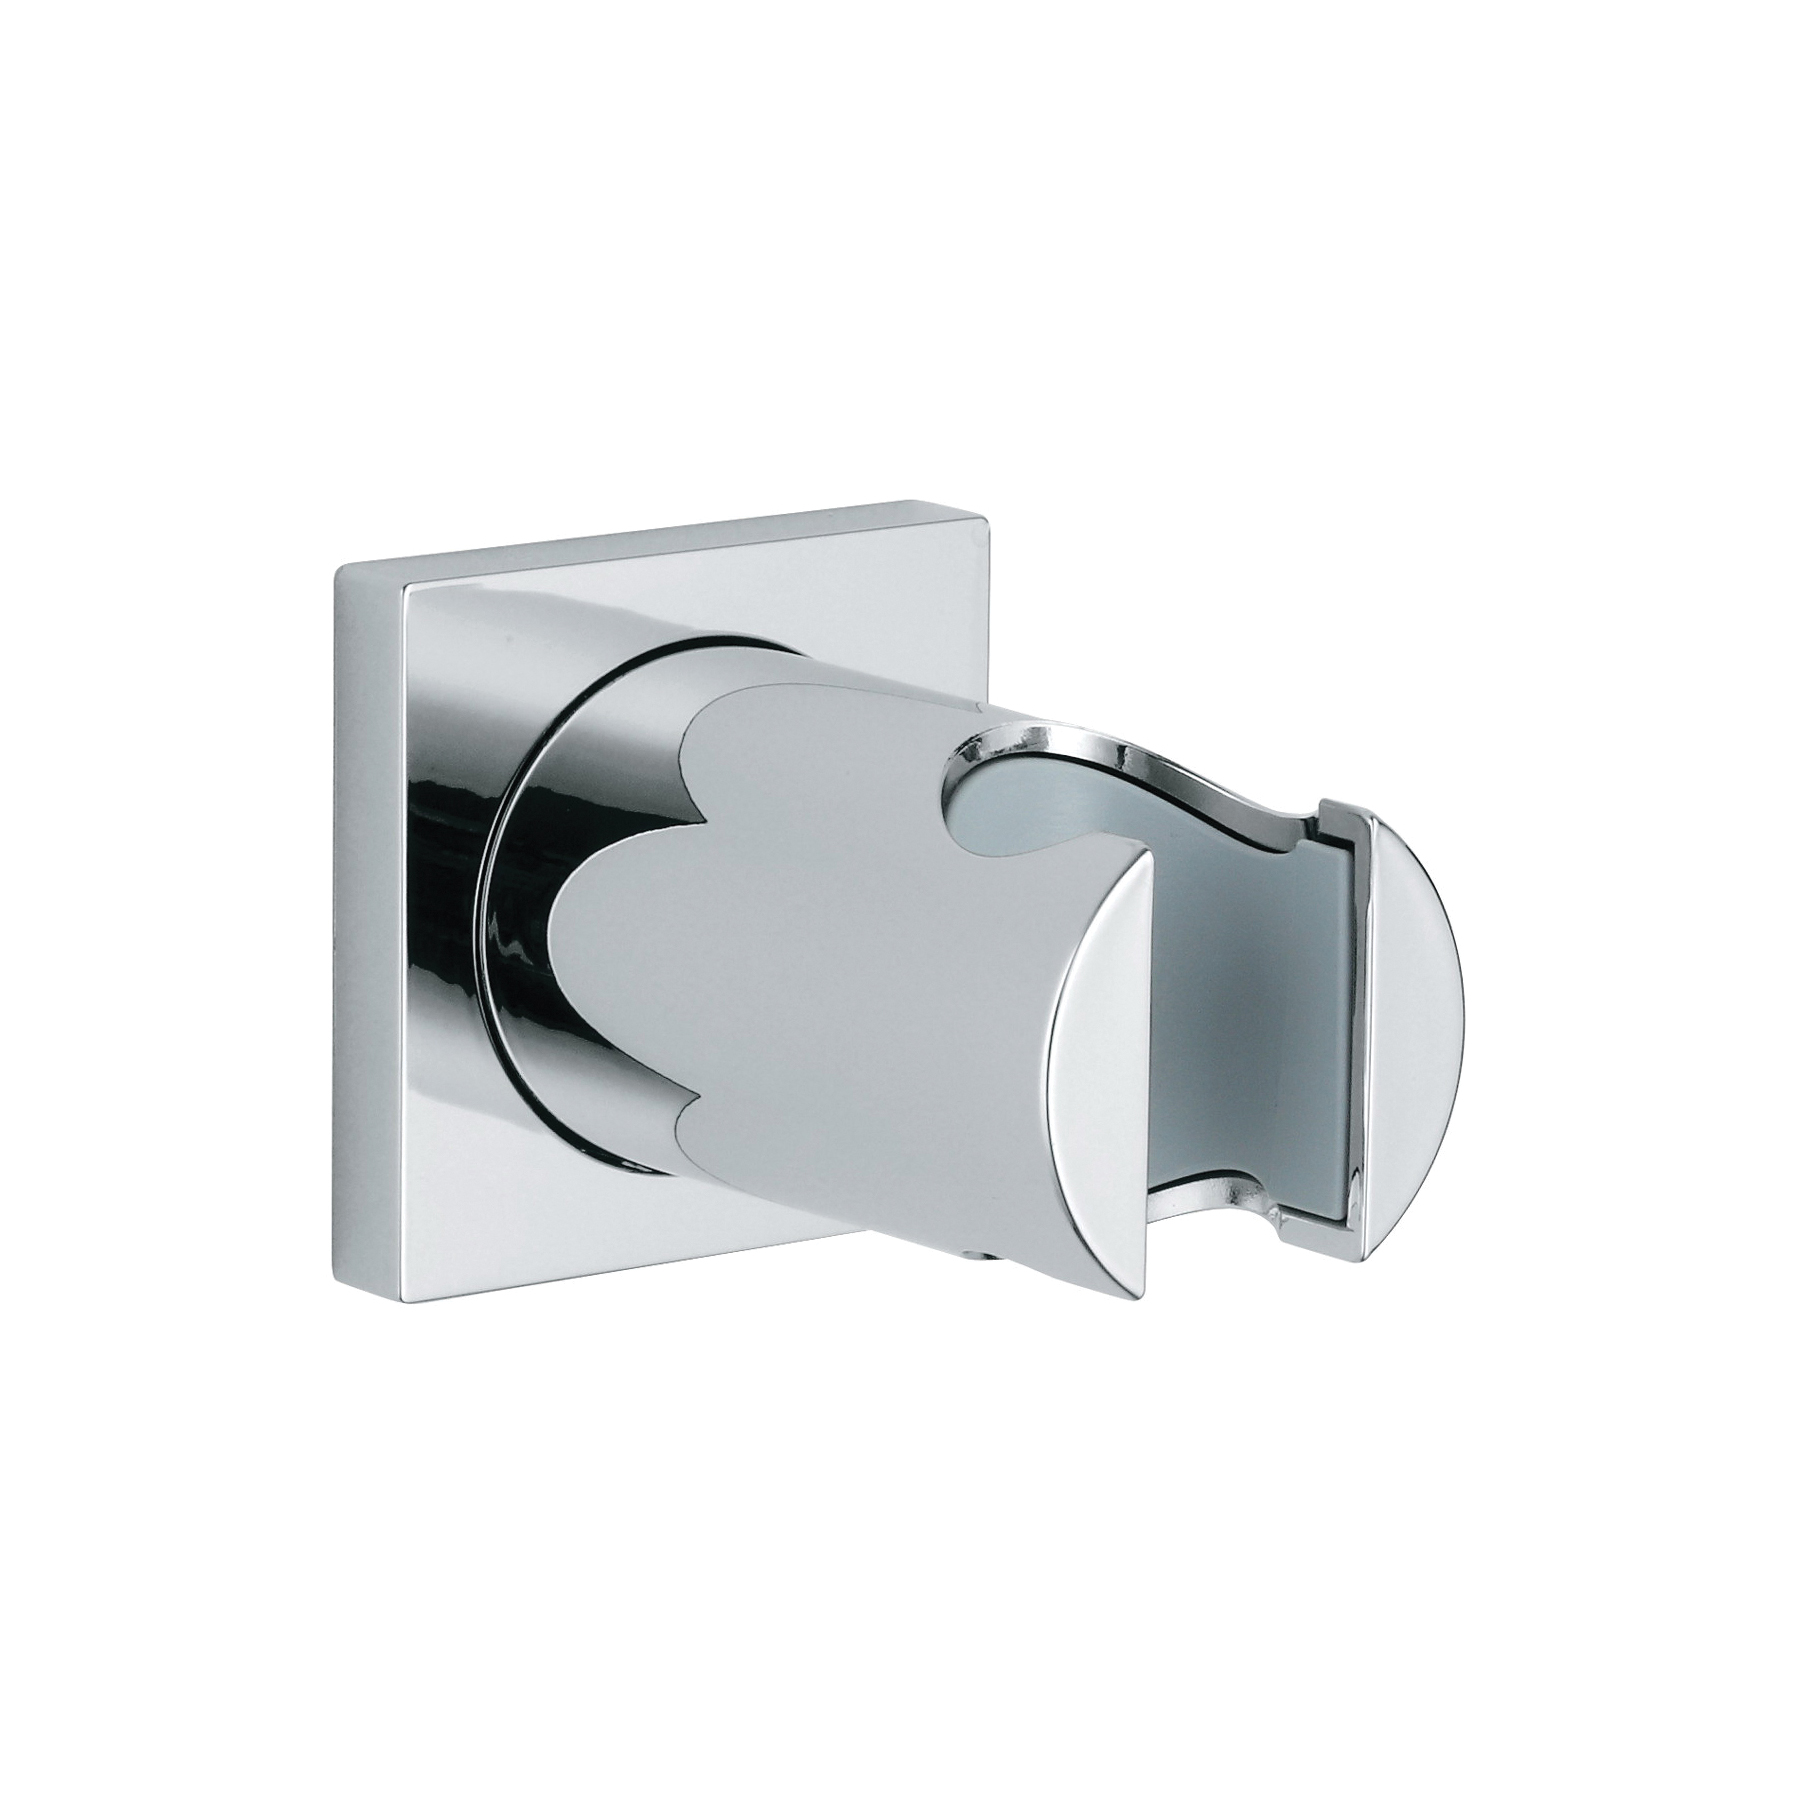 GROHE 27075000 Rainshower® Hand Shower Holder, Wall Mount, Import